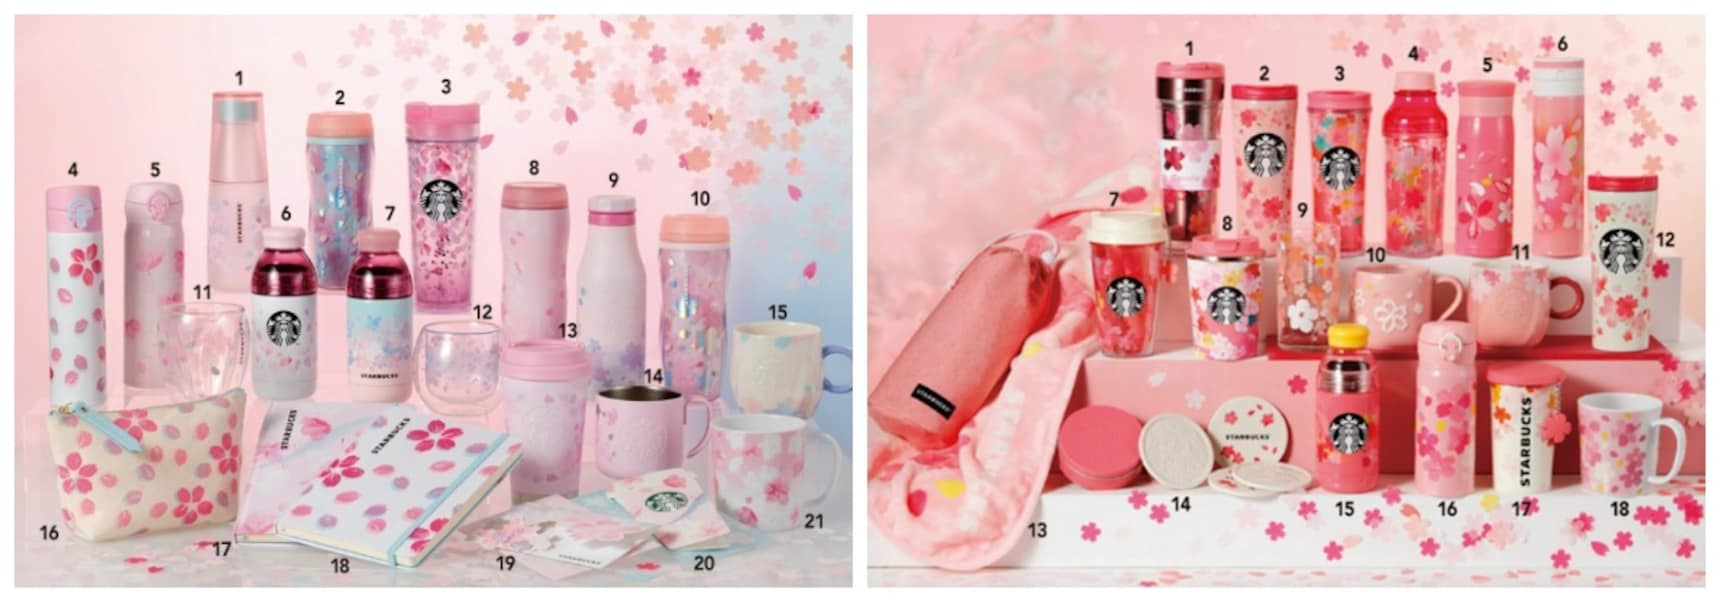 Starbucks Releases 2019 Cherry Blossom Merch